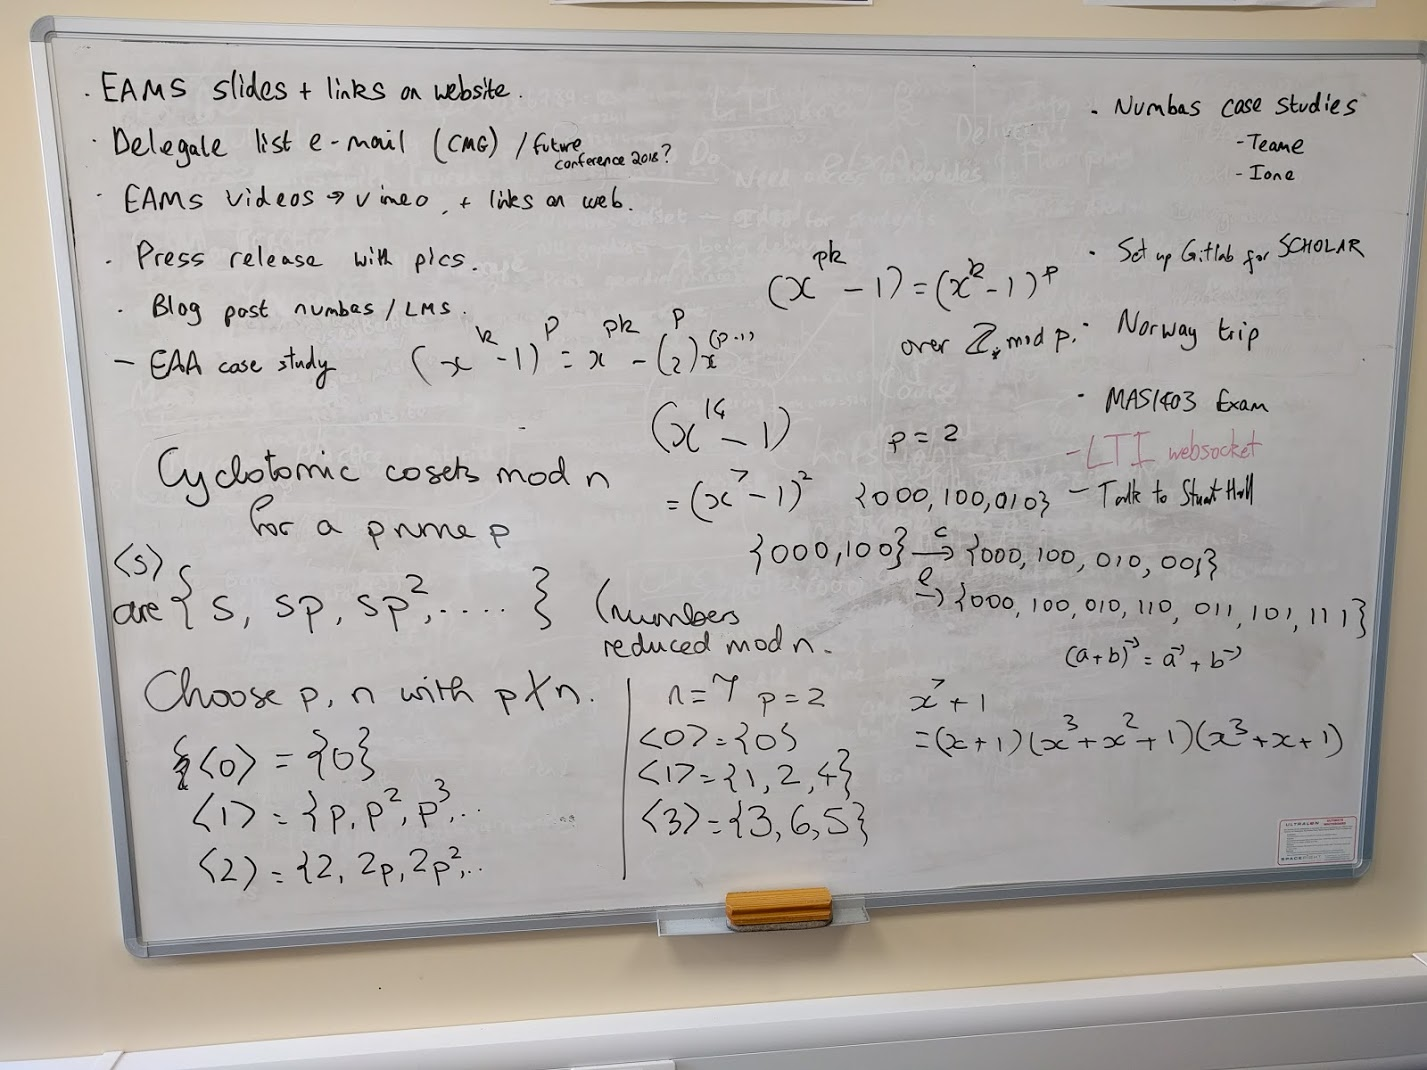 work out math problems Have you ever given up working on a math problem because you couldn't figure  out the next step wolfram|alpha can guide you step by step.